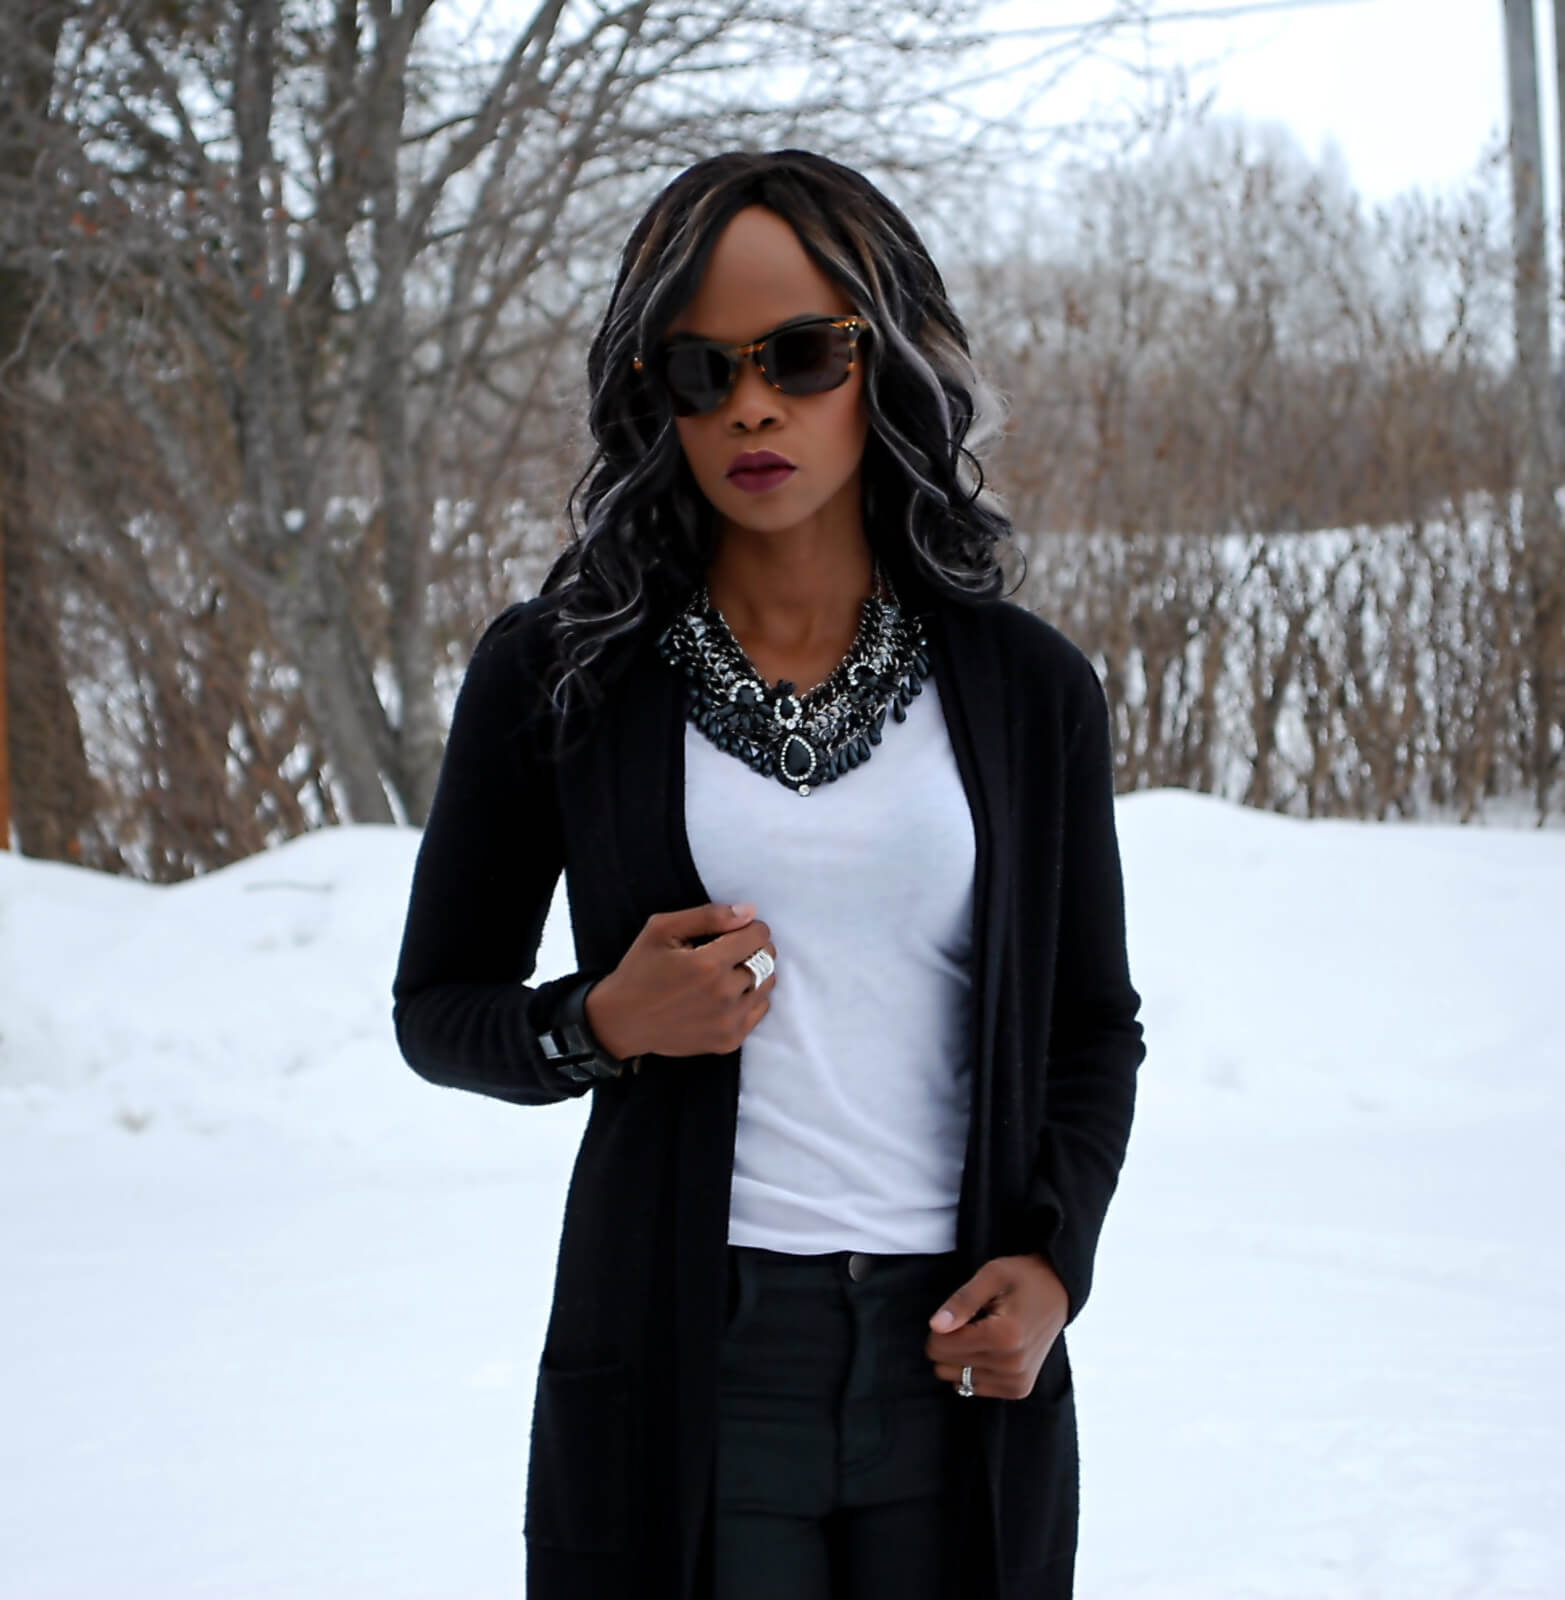 Mirina necklace, Mirina girl, black and white outfit, white club monaco t-shirt, black cardigan, winnipeg fashion blogger, style my dreams blog, black and white trend, statement necklace, black statement necklace